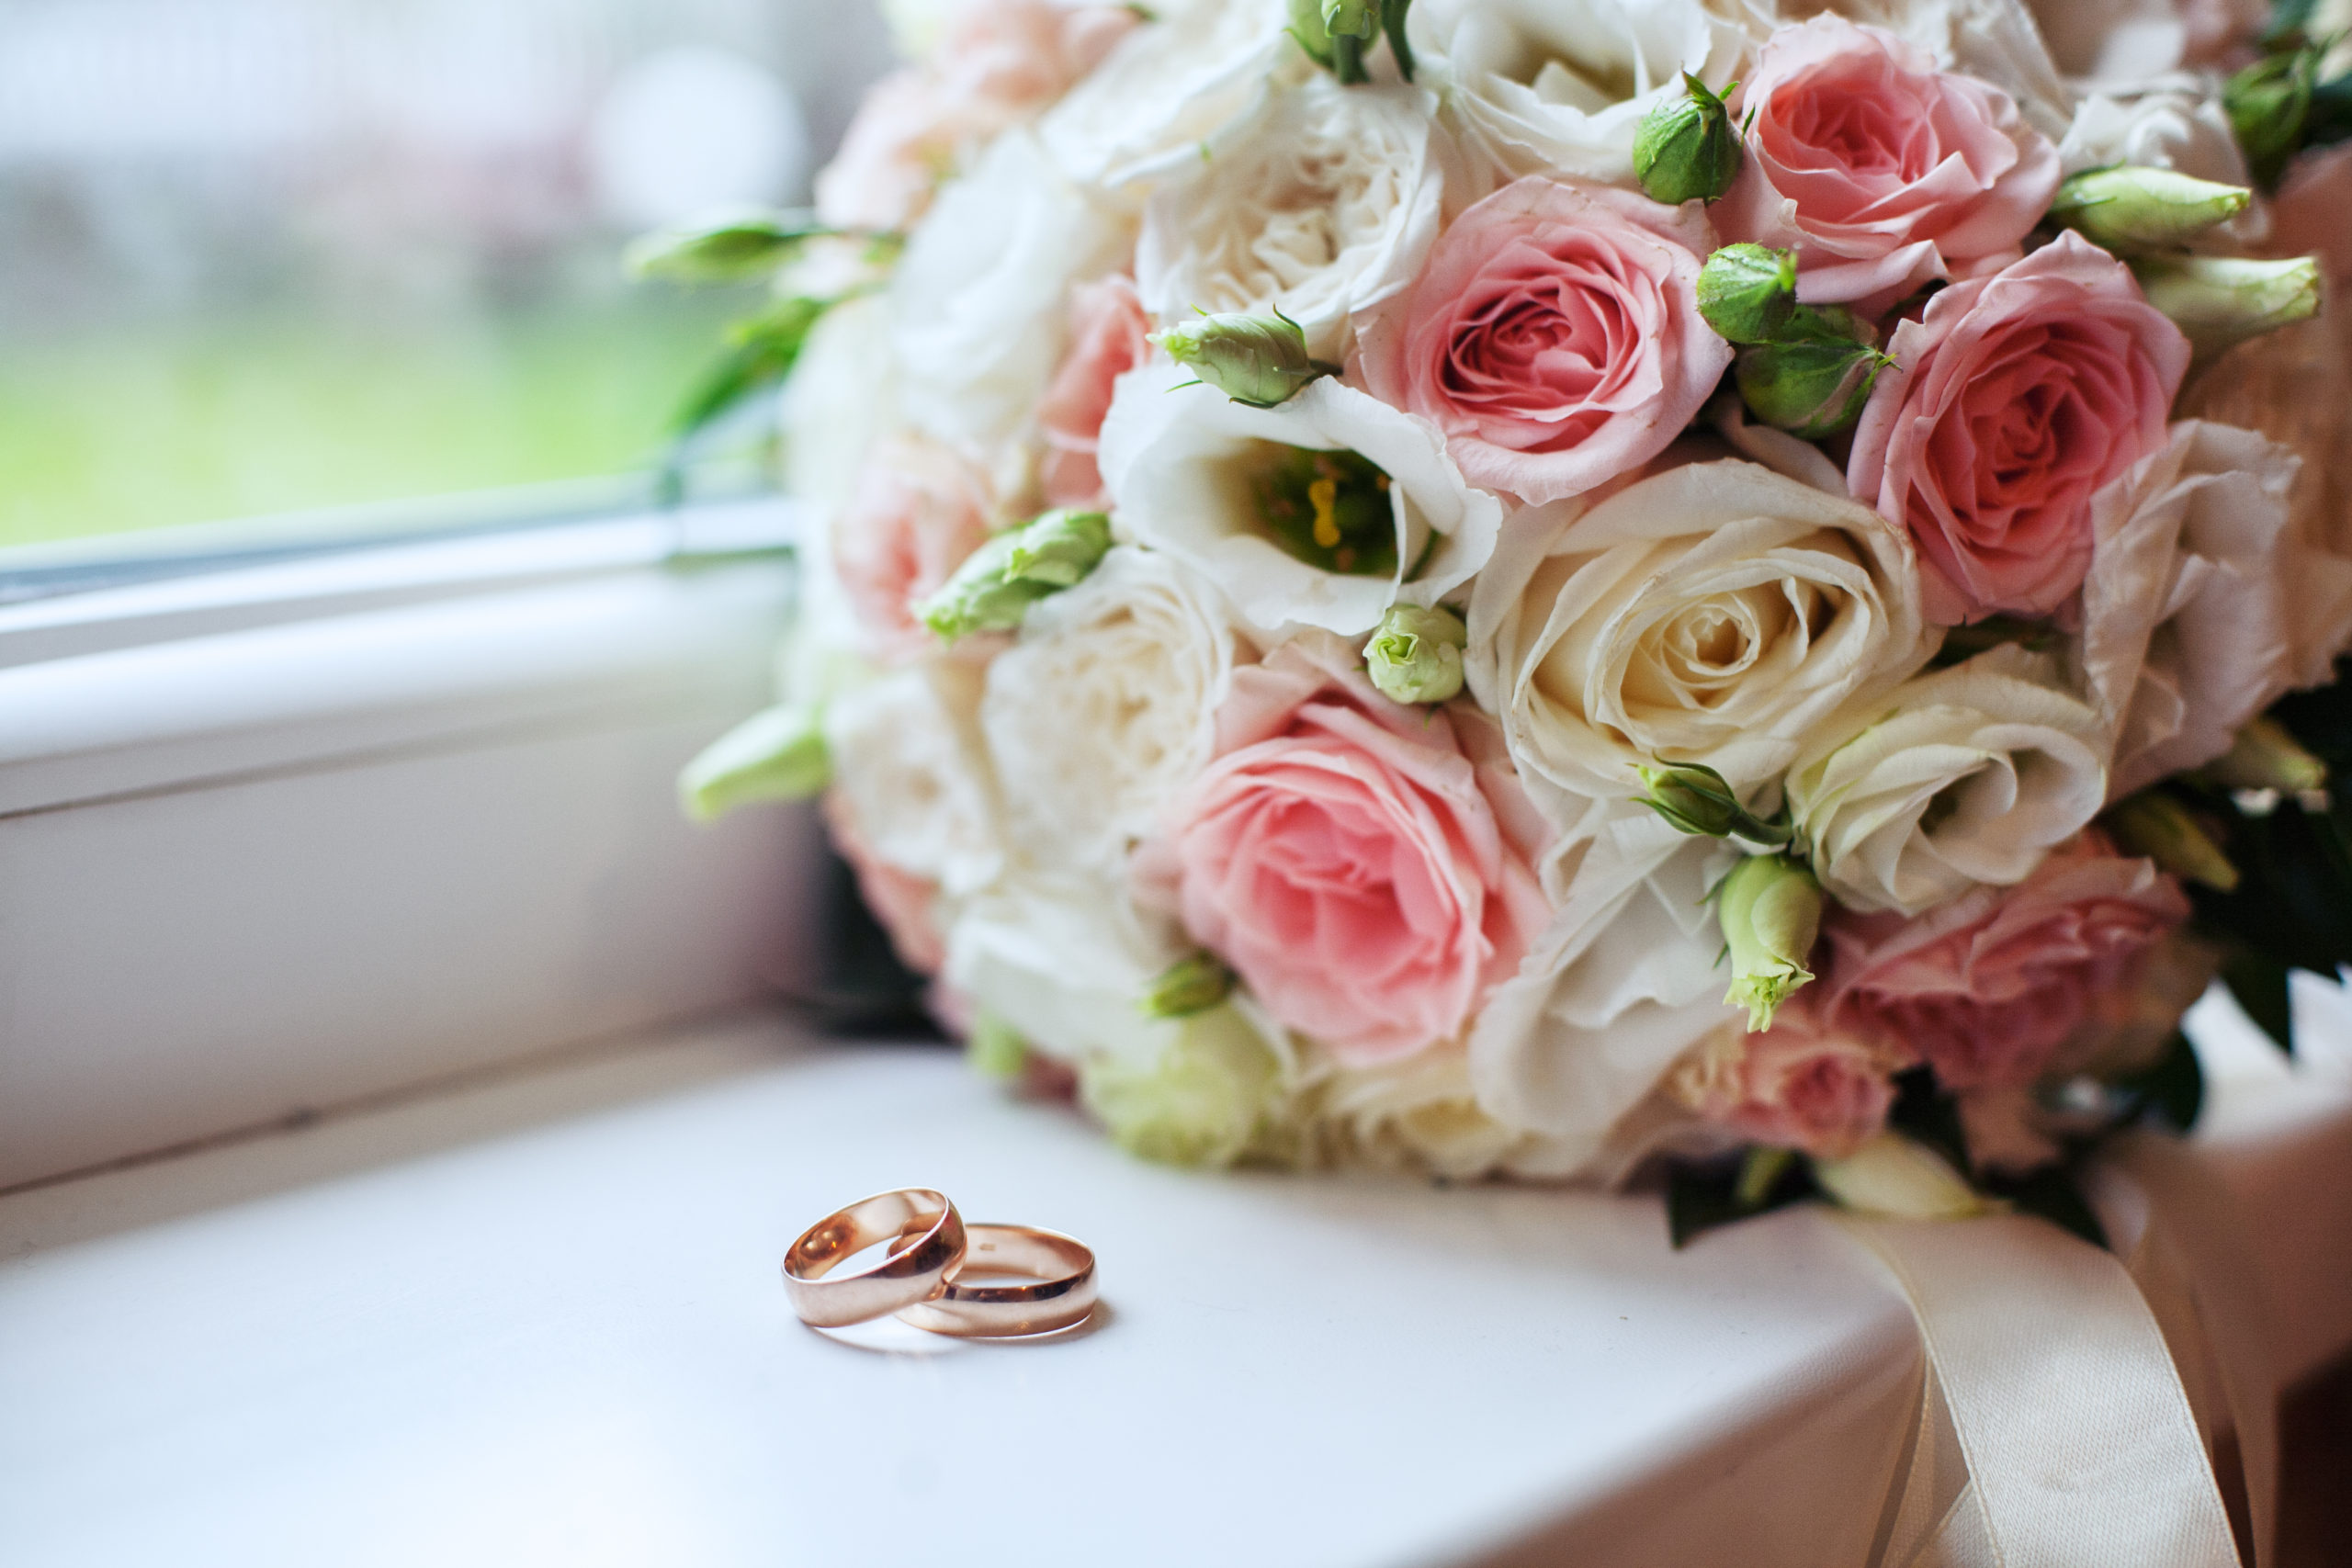 wedding-bouquet-rings-concept-marriage-love-576896977